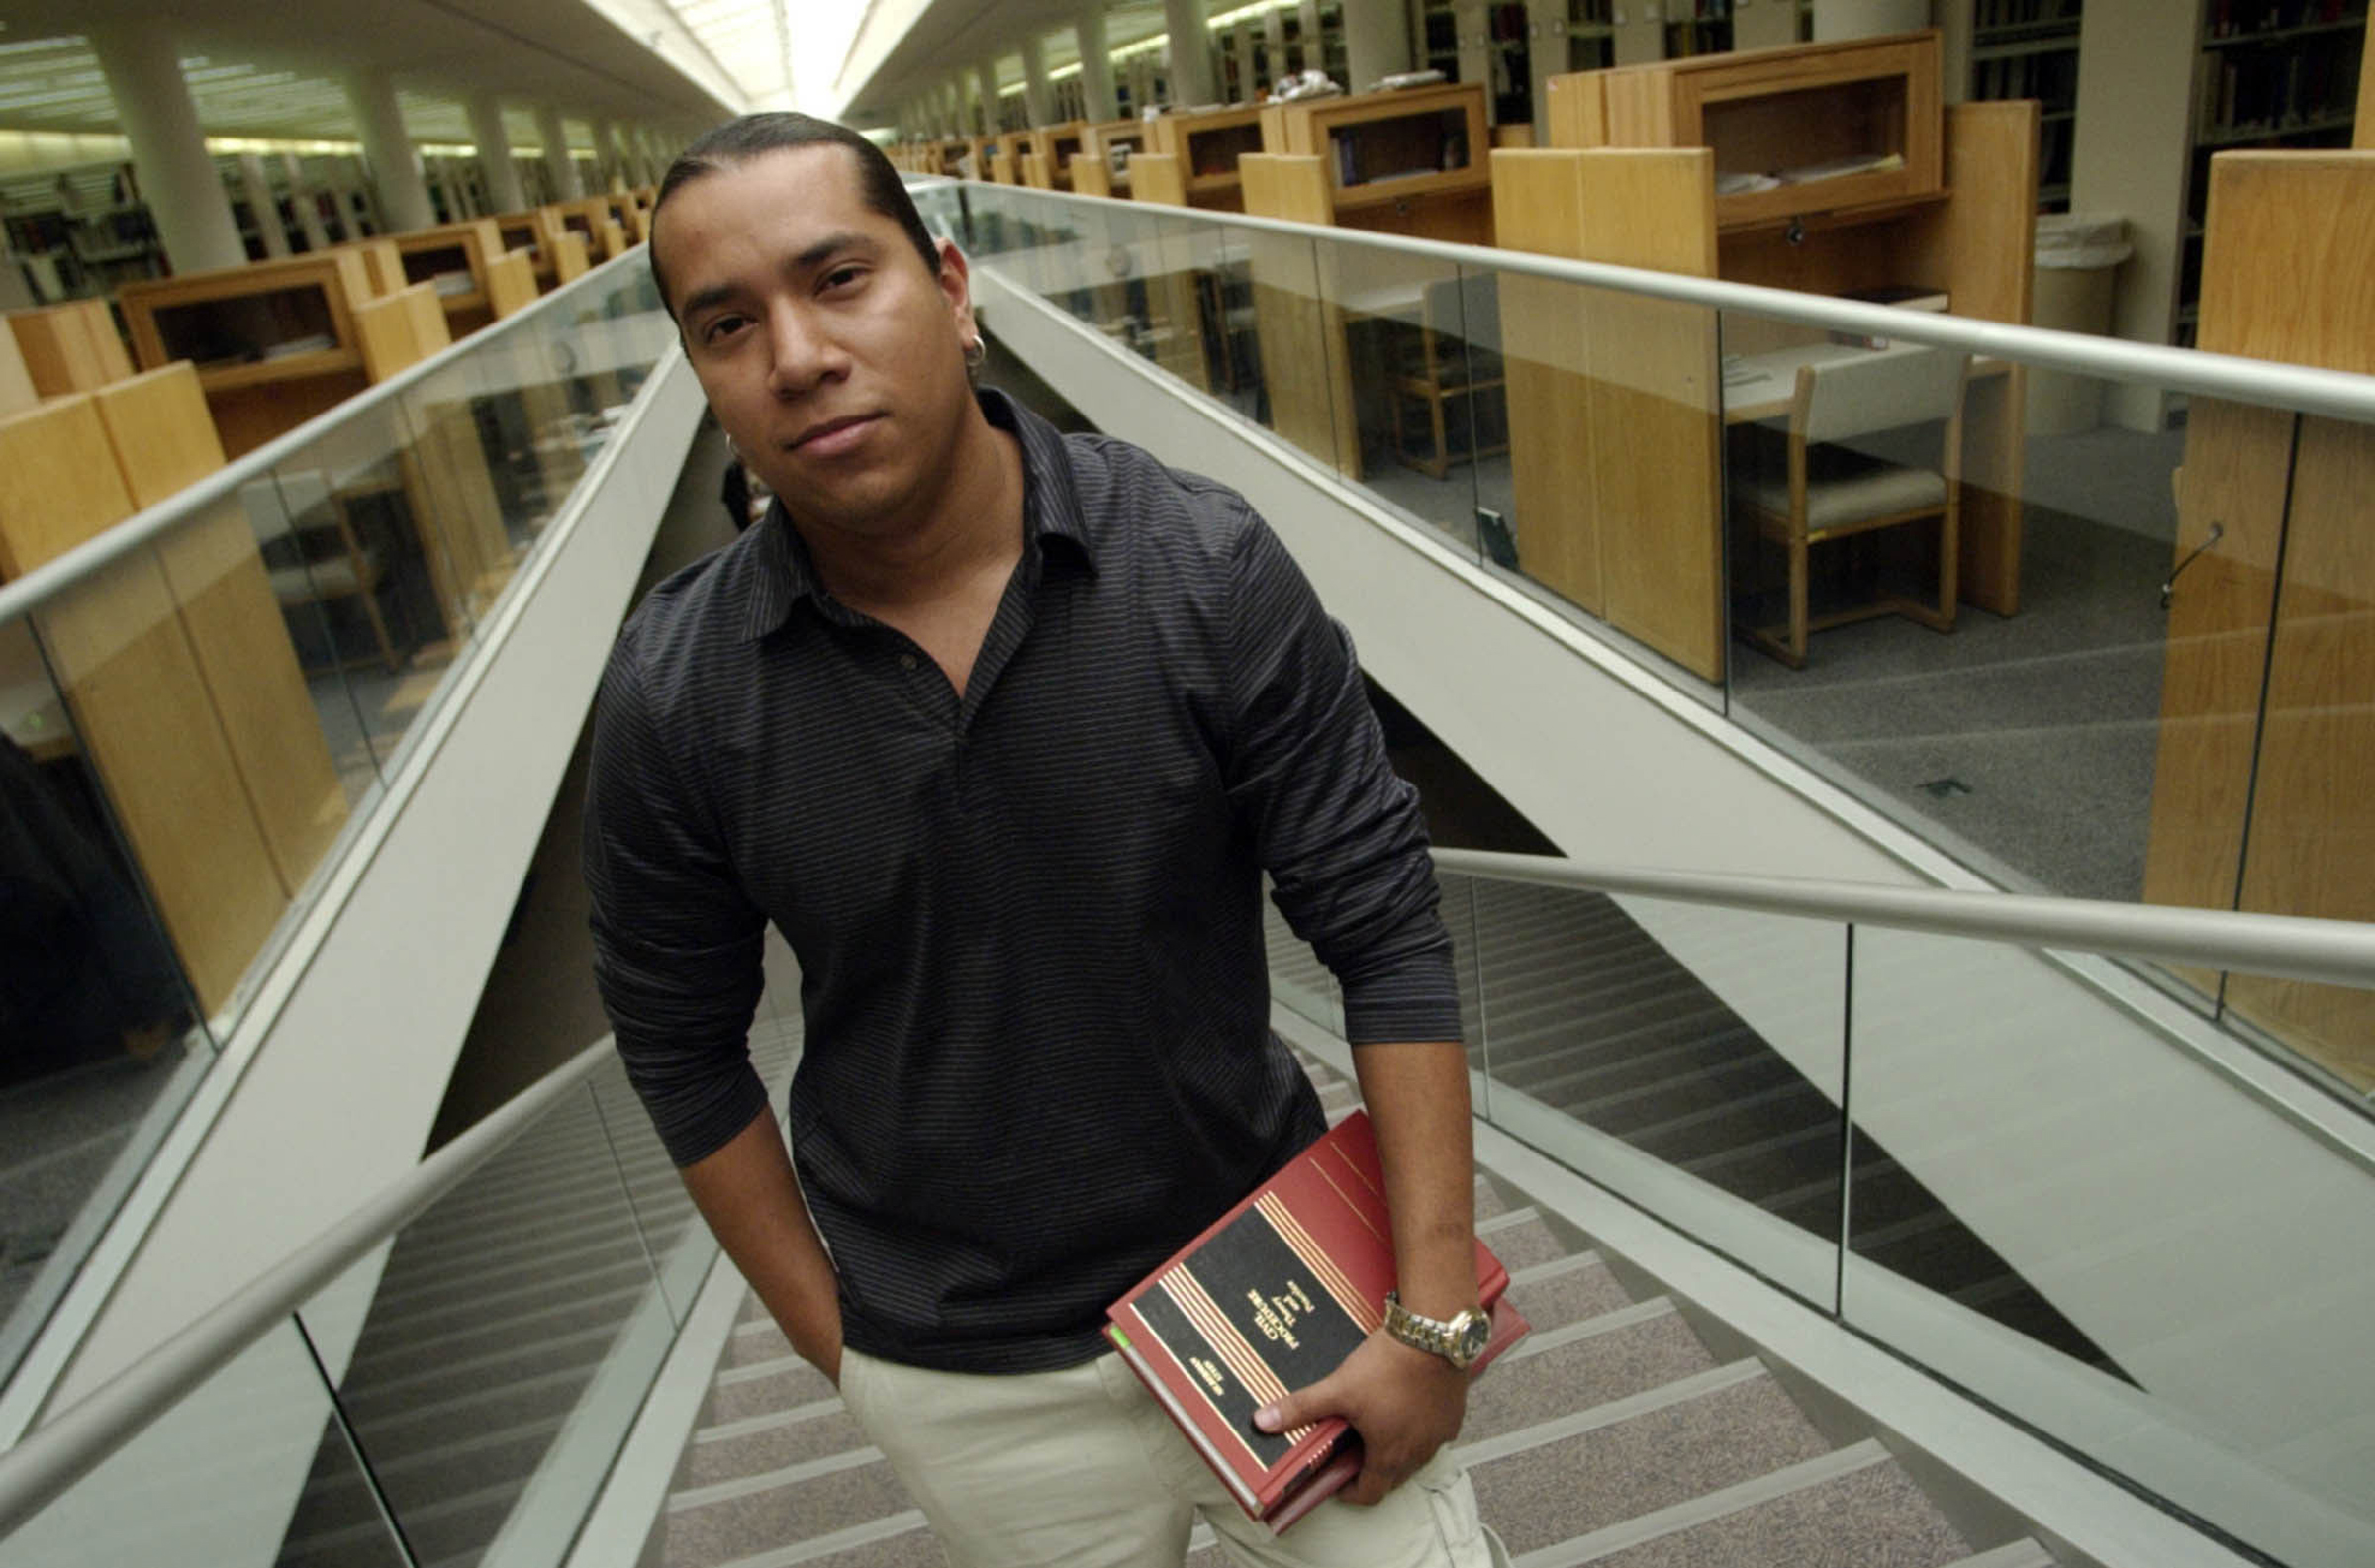 A new scholarship, created to celebrate the life of former law student David Cuch, 1978-2007, will be announced Friday, May 30. The David Arapene Cuch Endowed Scholarship Fund was created to provide financial support for members of the Ute Indian Tribe who follow Cuch's path by attending law school at the U. The scholarship is funded by his family and friends.